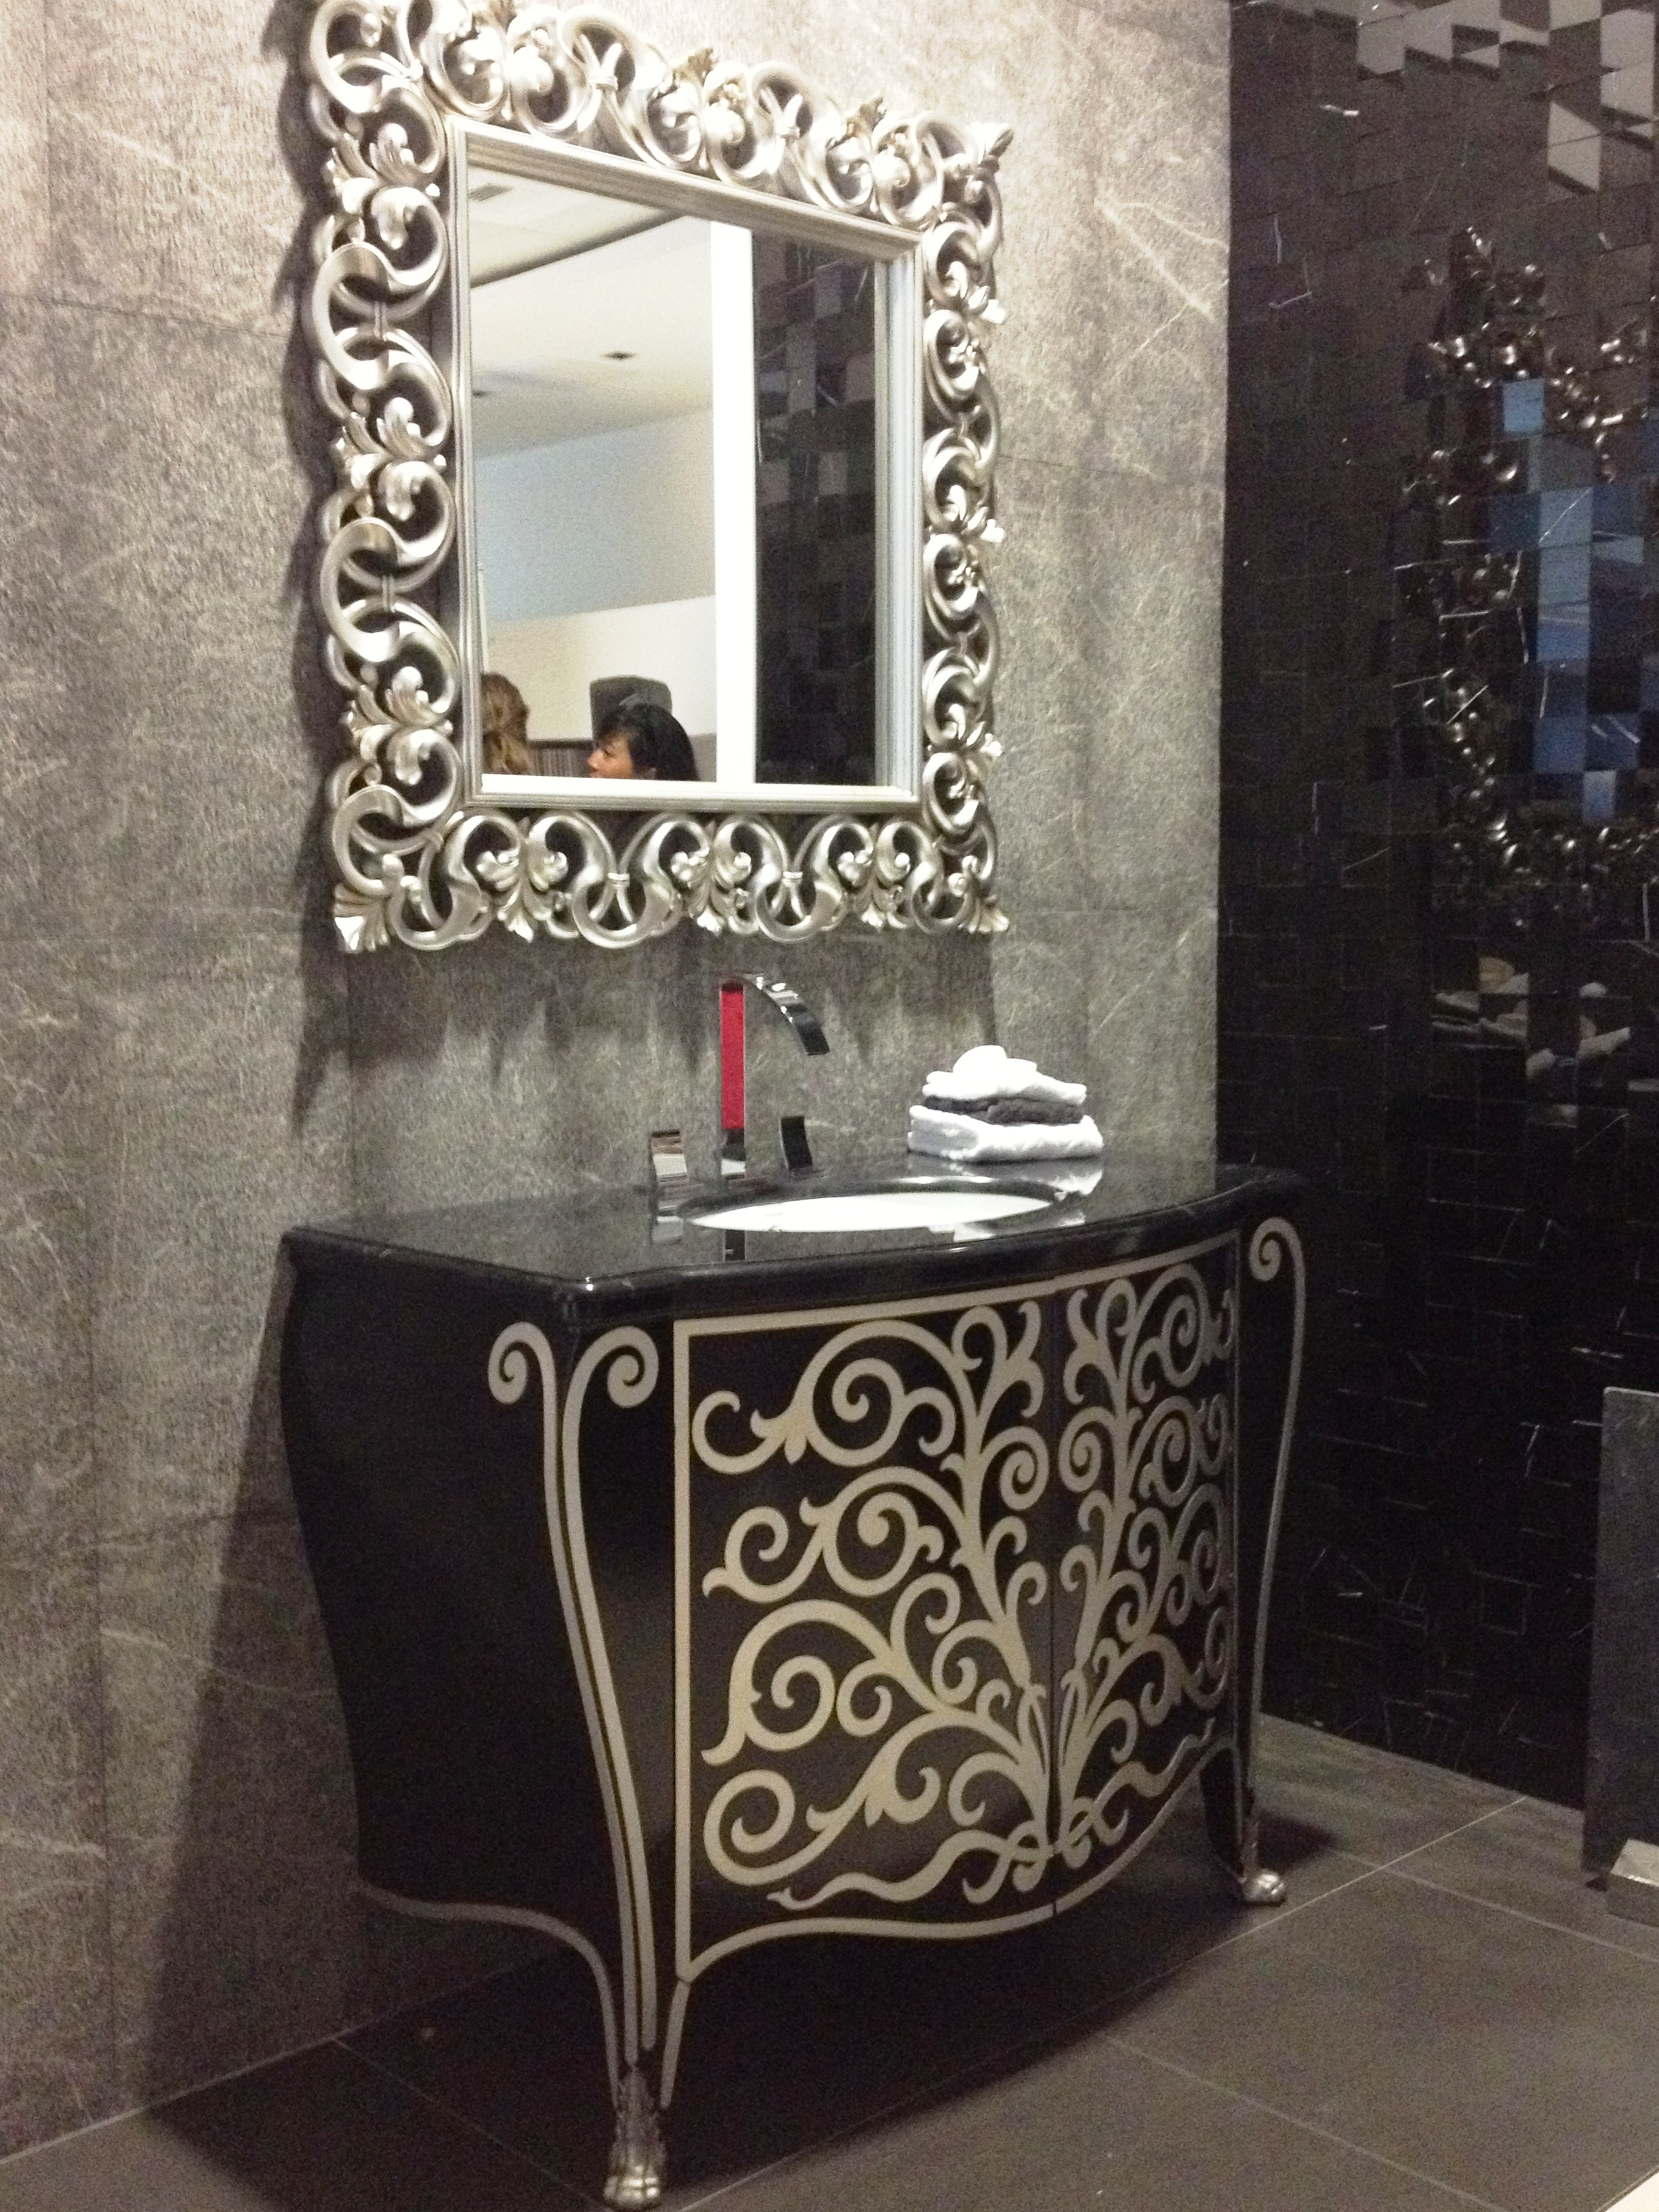 Widely Used Decorative Wall Mirrors For Bathrooms Intended For Design Wall Mirrors Awesome Decorative Unique Geometric Mirror (View 8 of 20)